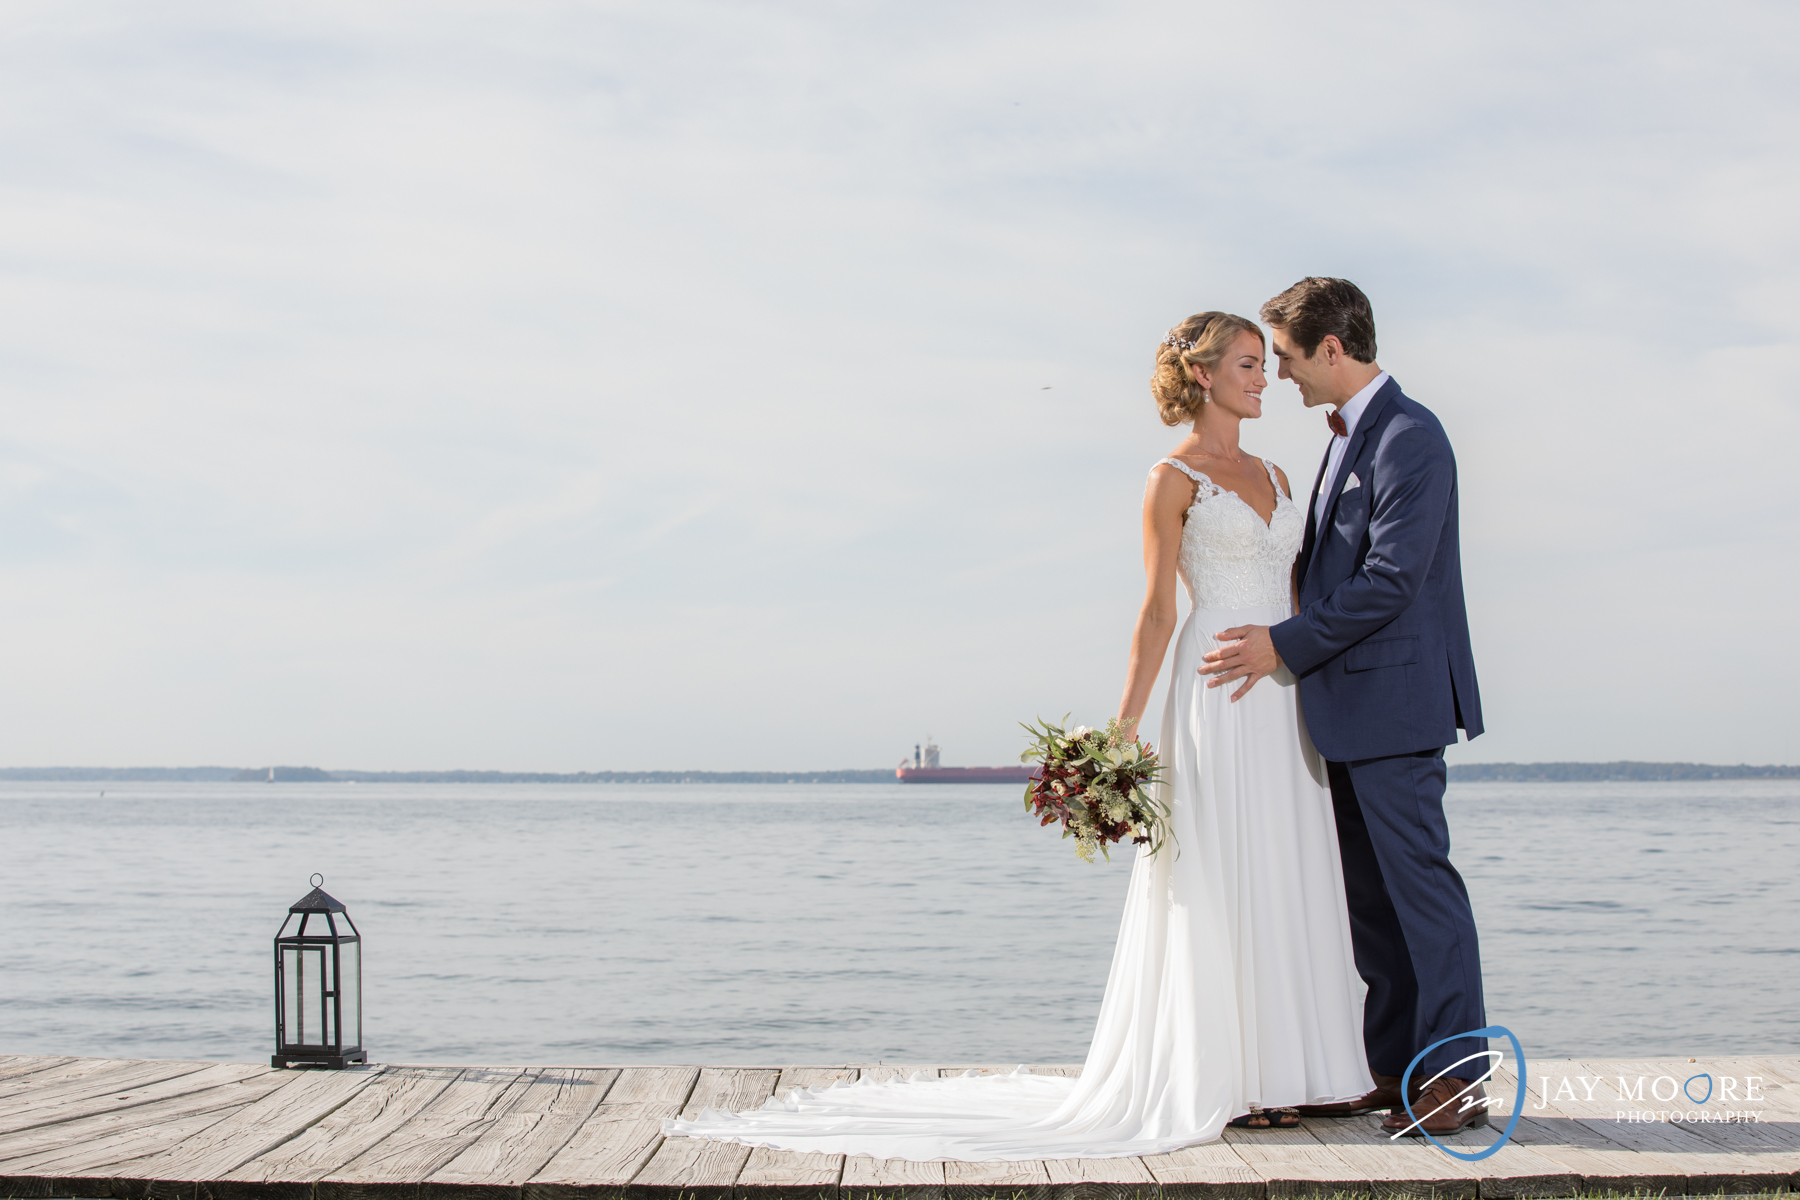 102117 MD Colleen McArdle + Matthew - Jay Moore Photography AF LS_0191.jpg